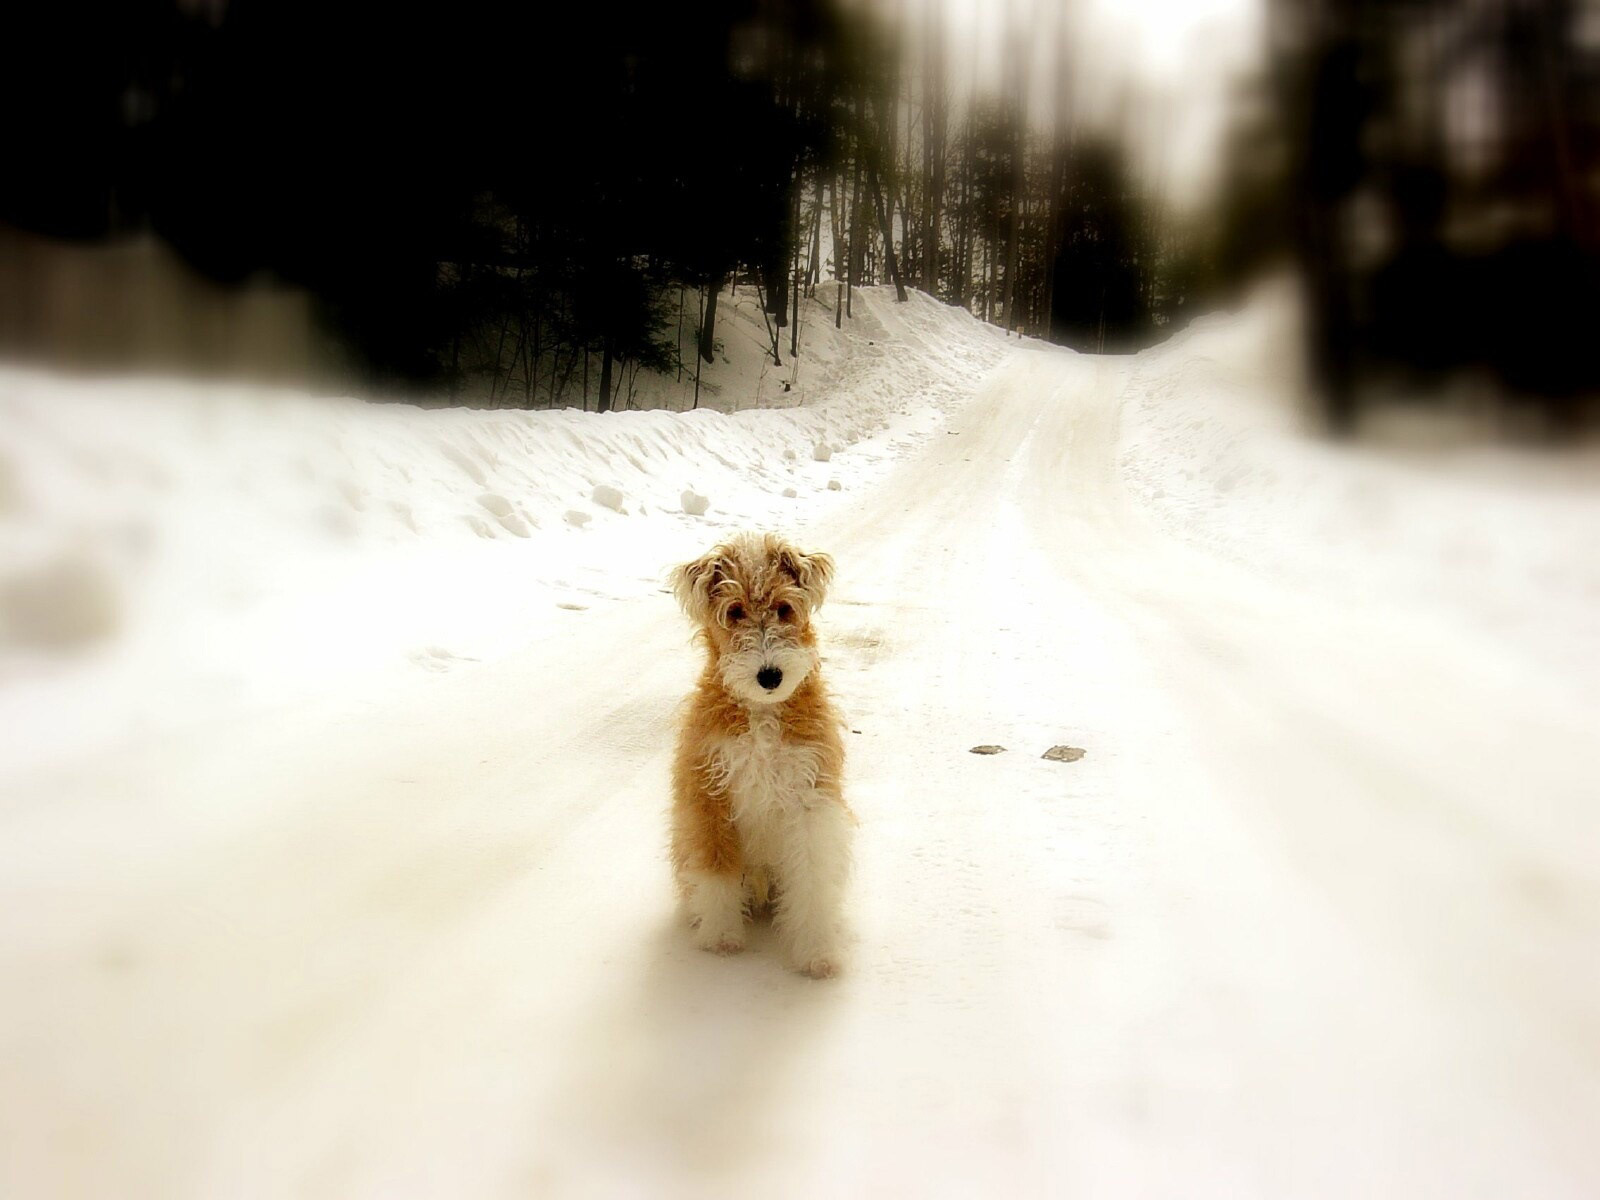 Desktop Backgrounds // Animal Life // Dogs | Puppy dogs // Winter ...